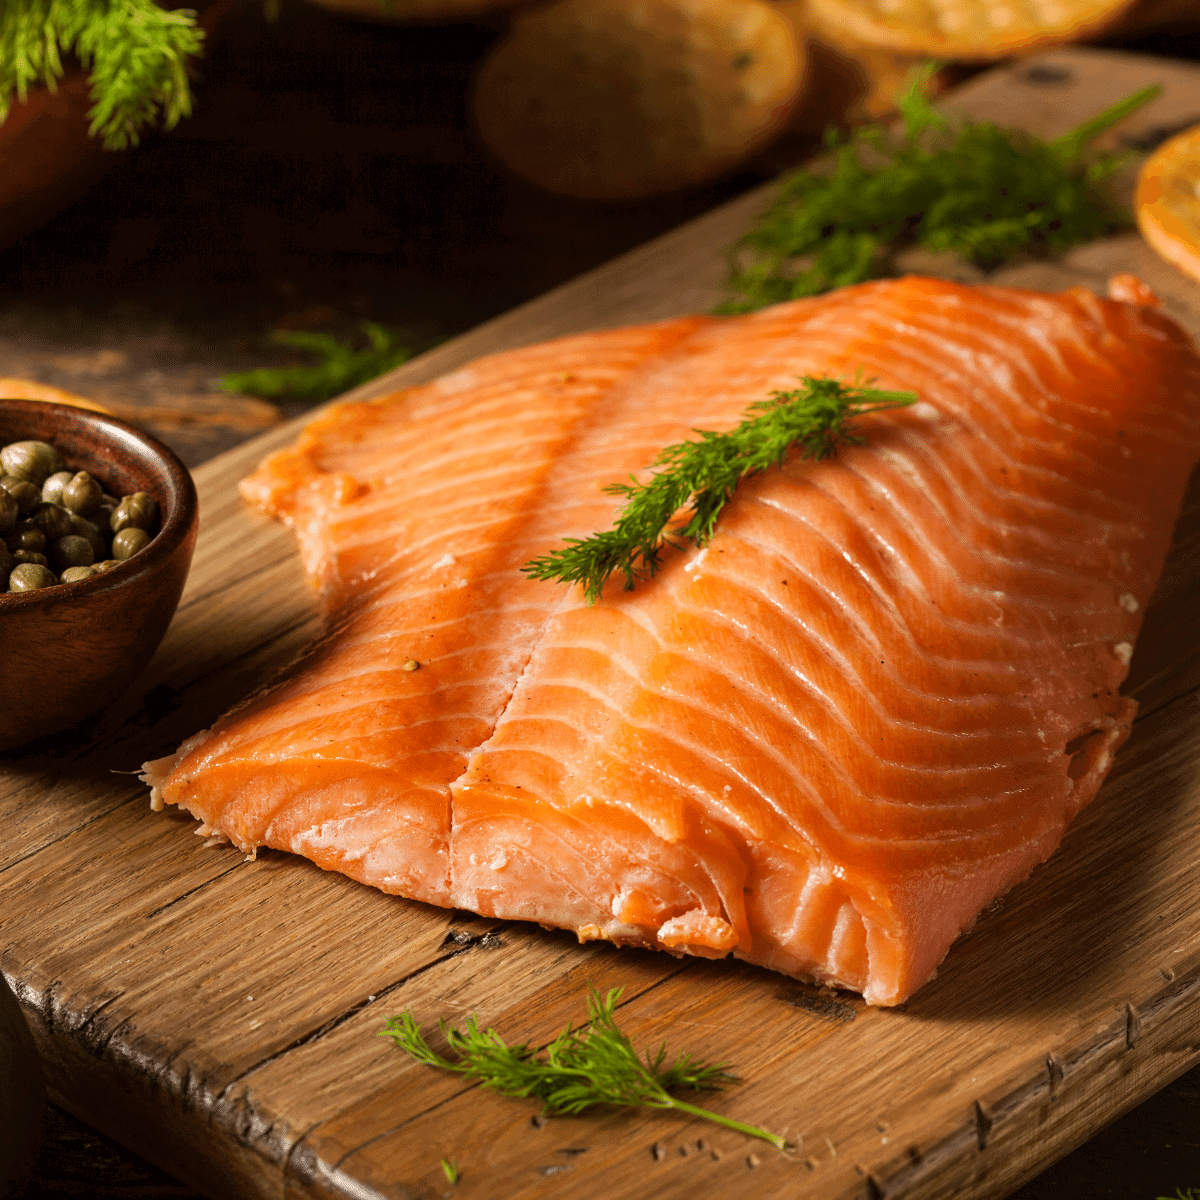 A large fillet of salmon on a wood plank